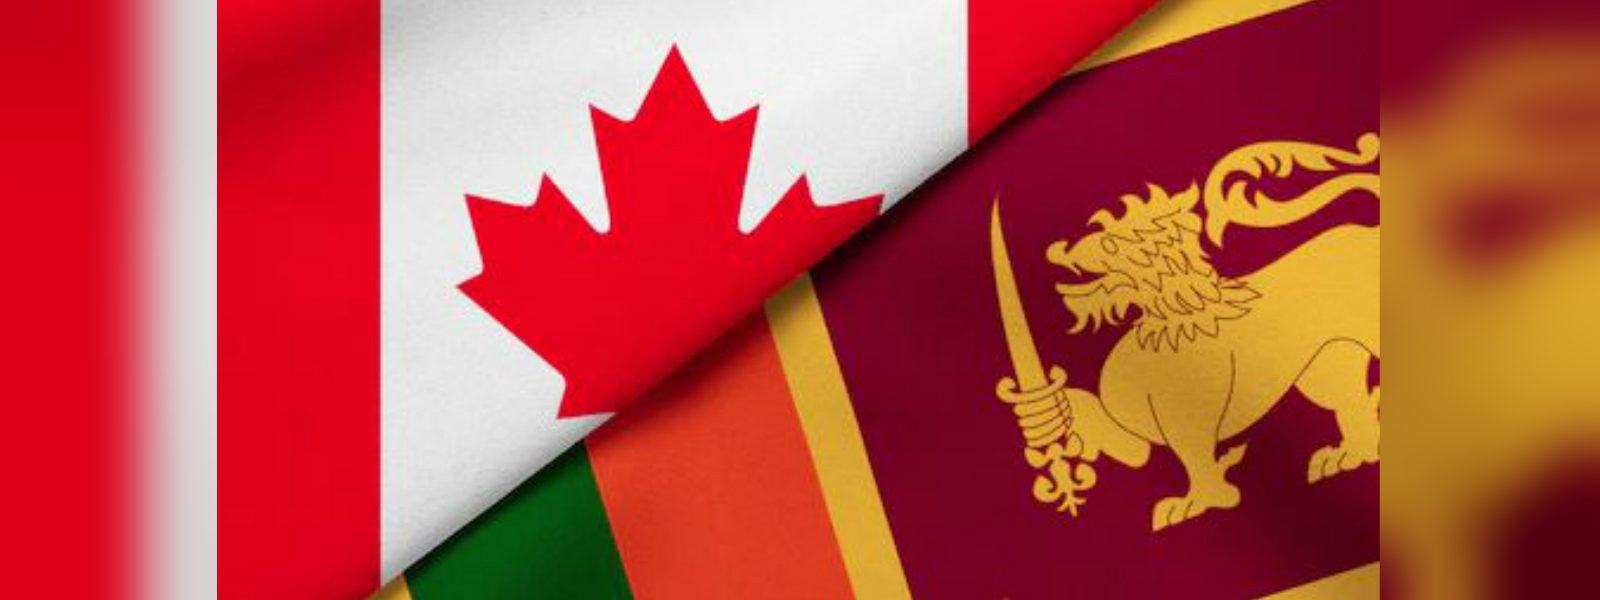 Canada announces $2 million support for landmine clearance in Northern Sri Lanka